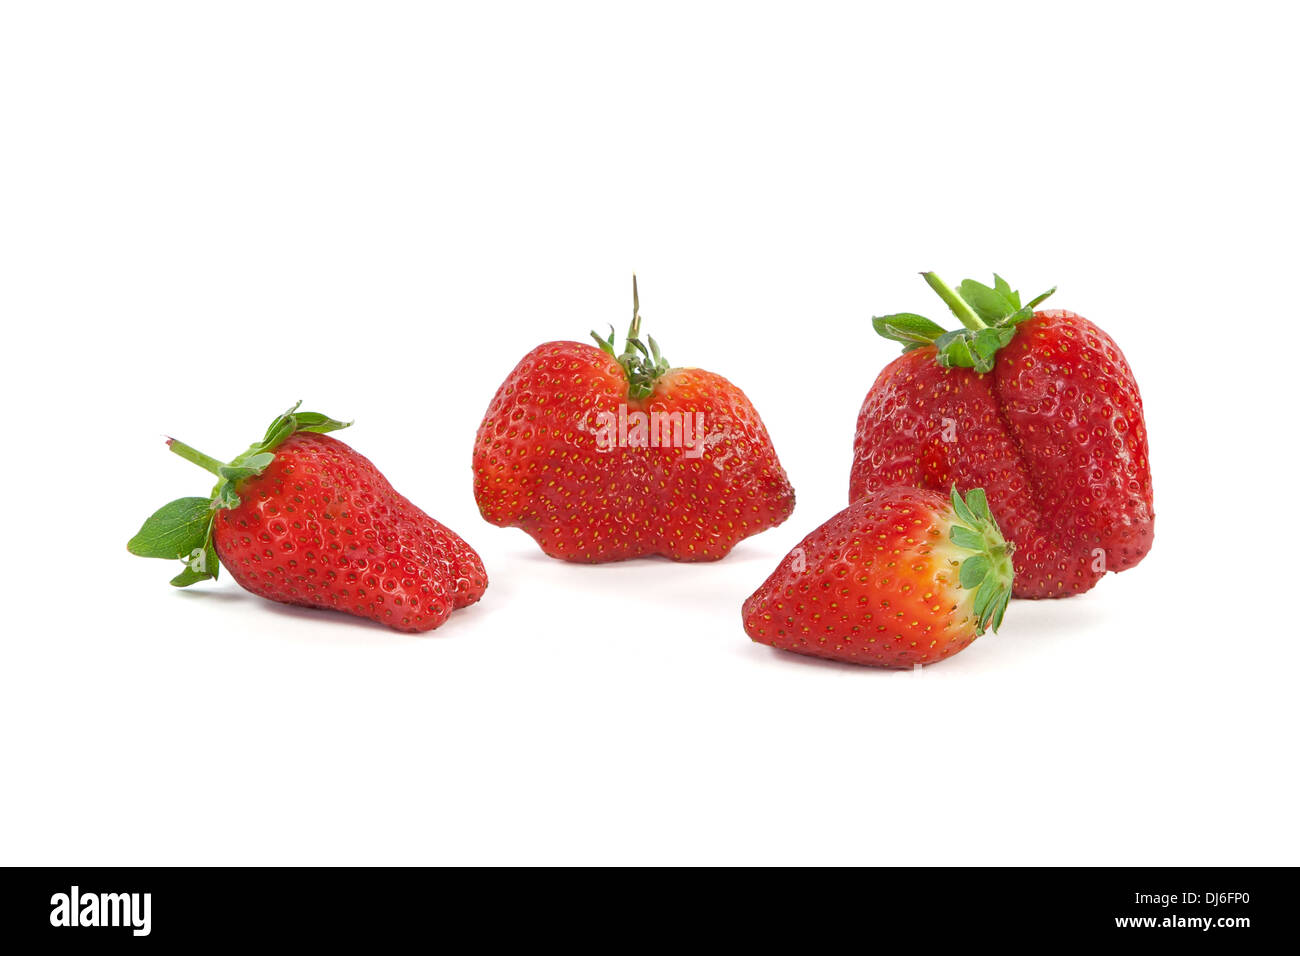 Strawberries isolated on white background - Stock Image